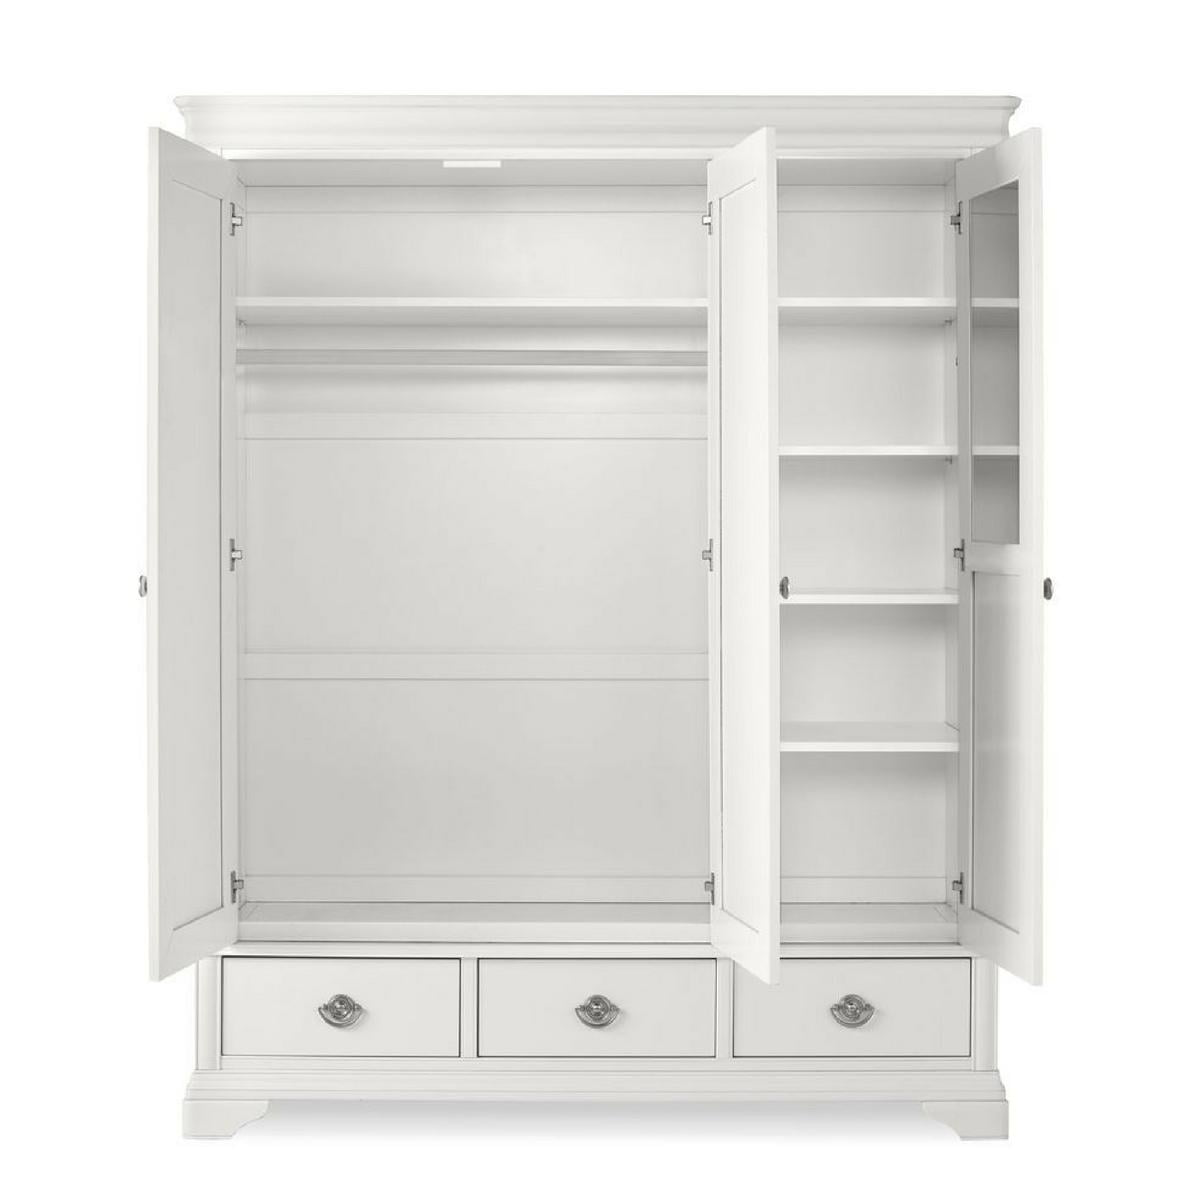 Chanel White Wardrobe